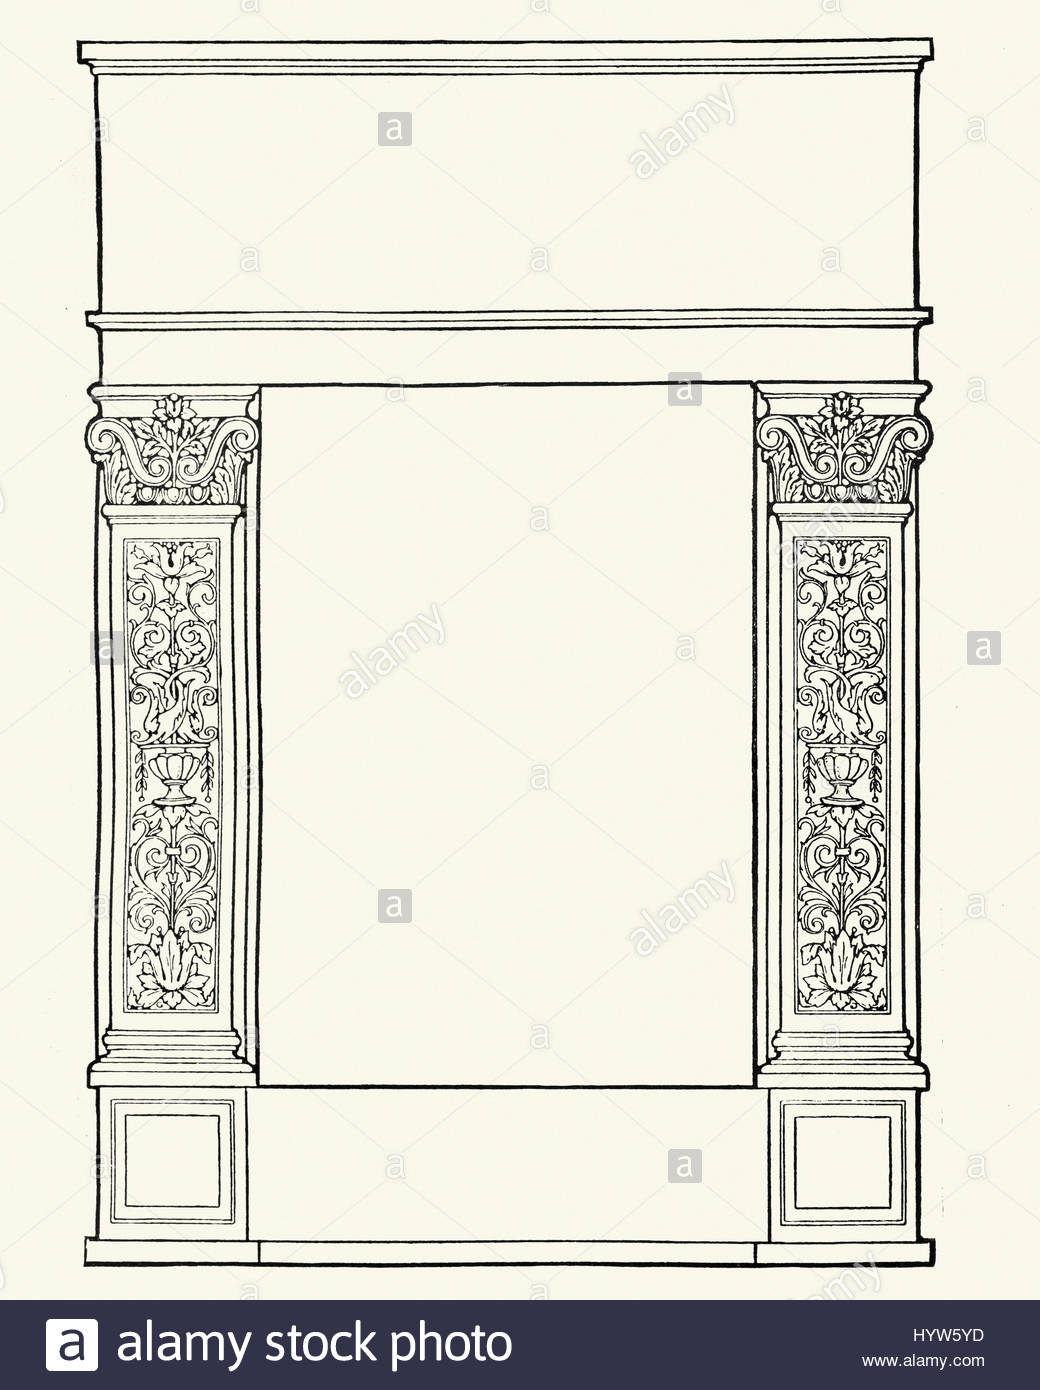 1040x1390 Ornate Blank Border Title Page Stock Photo 137621777